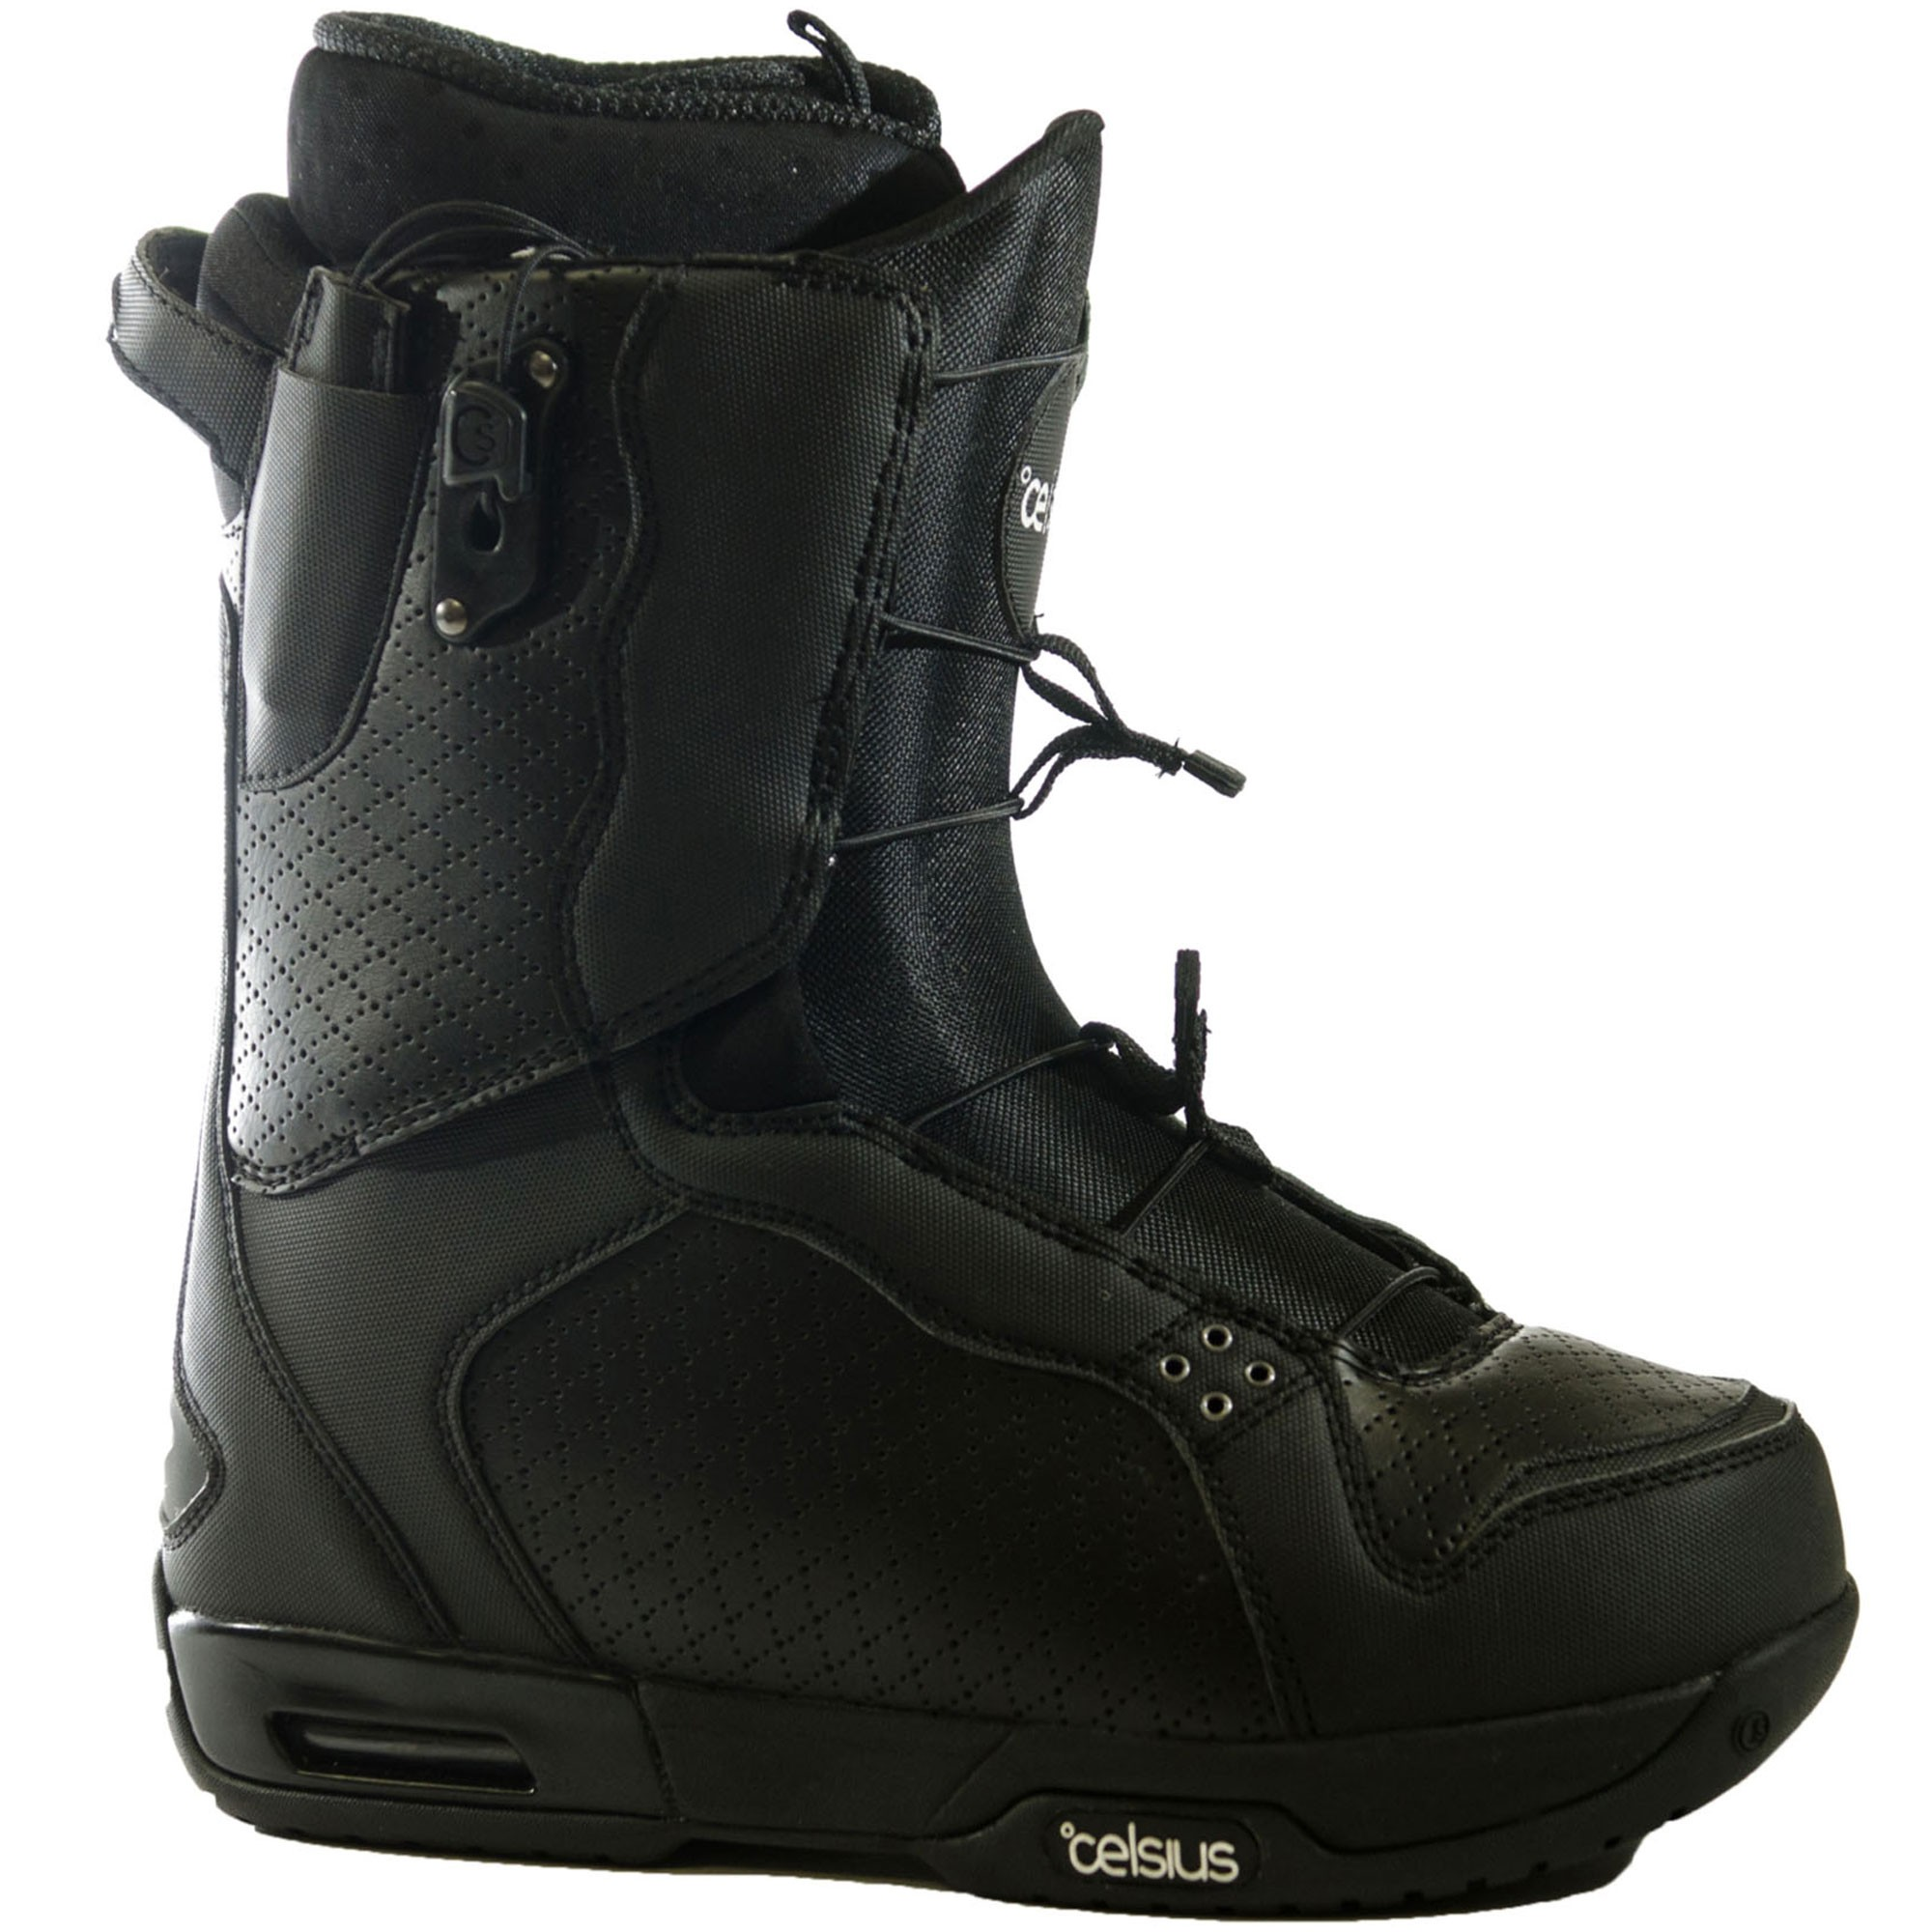 Celsius Cirrus O.Zone Speed Laces Snowboard Boots - Black